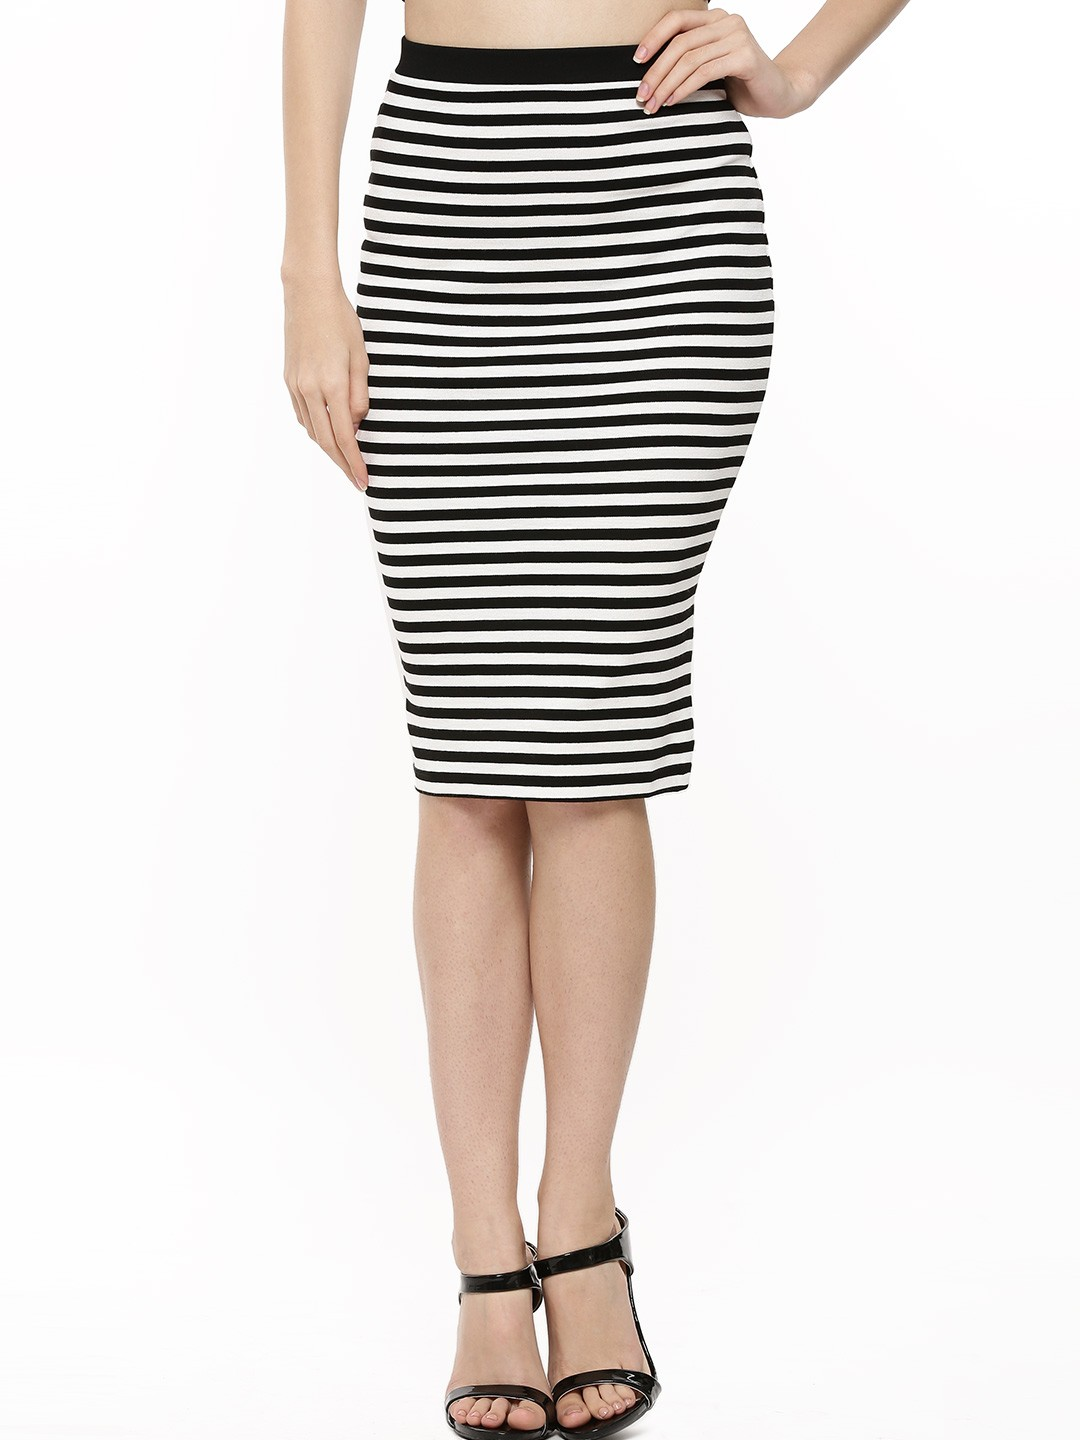 Buy LIPSY Stripe Pencil Skirt For Women - Women's Black/White ...